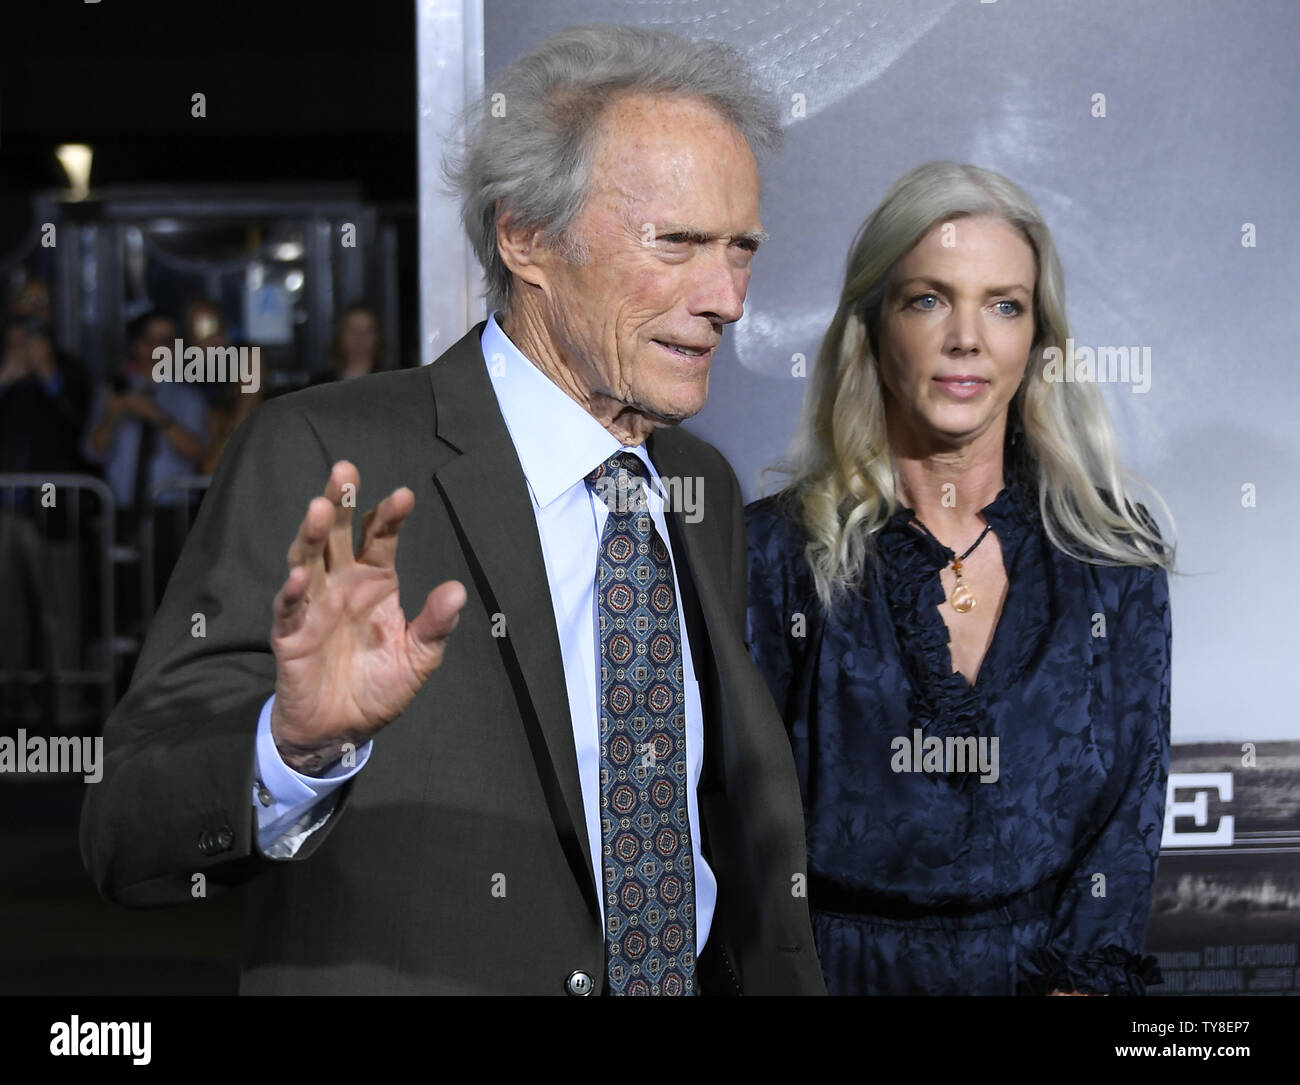 """Director and cast member Clint Eastwood with Christina Sandera attends the premiere of the motion picture crime thriller """"The Mule"""" at the Regency Village Theatre in the Westwood section of Los Angeles on December 10, 2018. The film tells the true story of a 90-year-old horticulturist and WWII veteran who is caught transporting $3 million worth of cocaine through Michigan for a Mexican drug cartel.  Photo by John McCoy/UPI Stock Photo"""